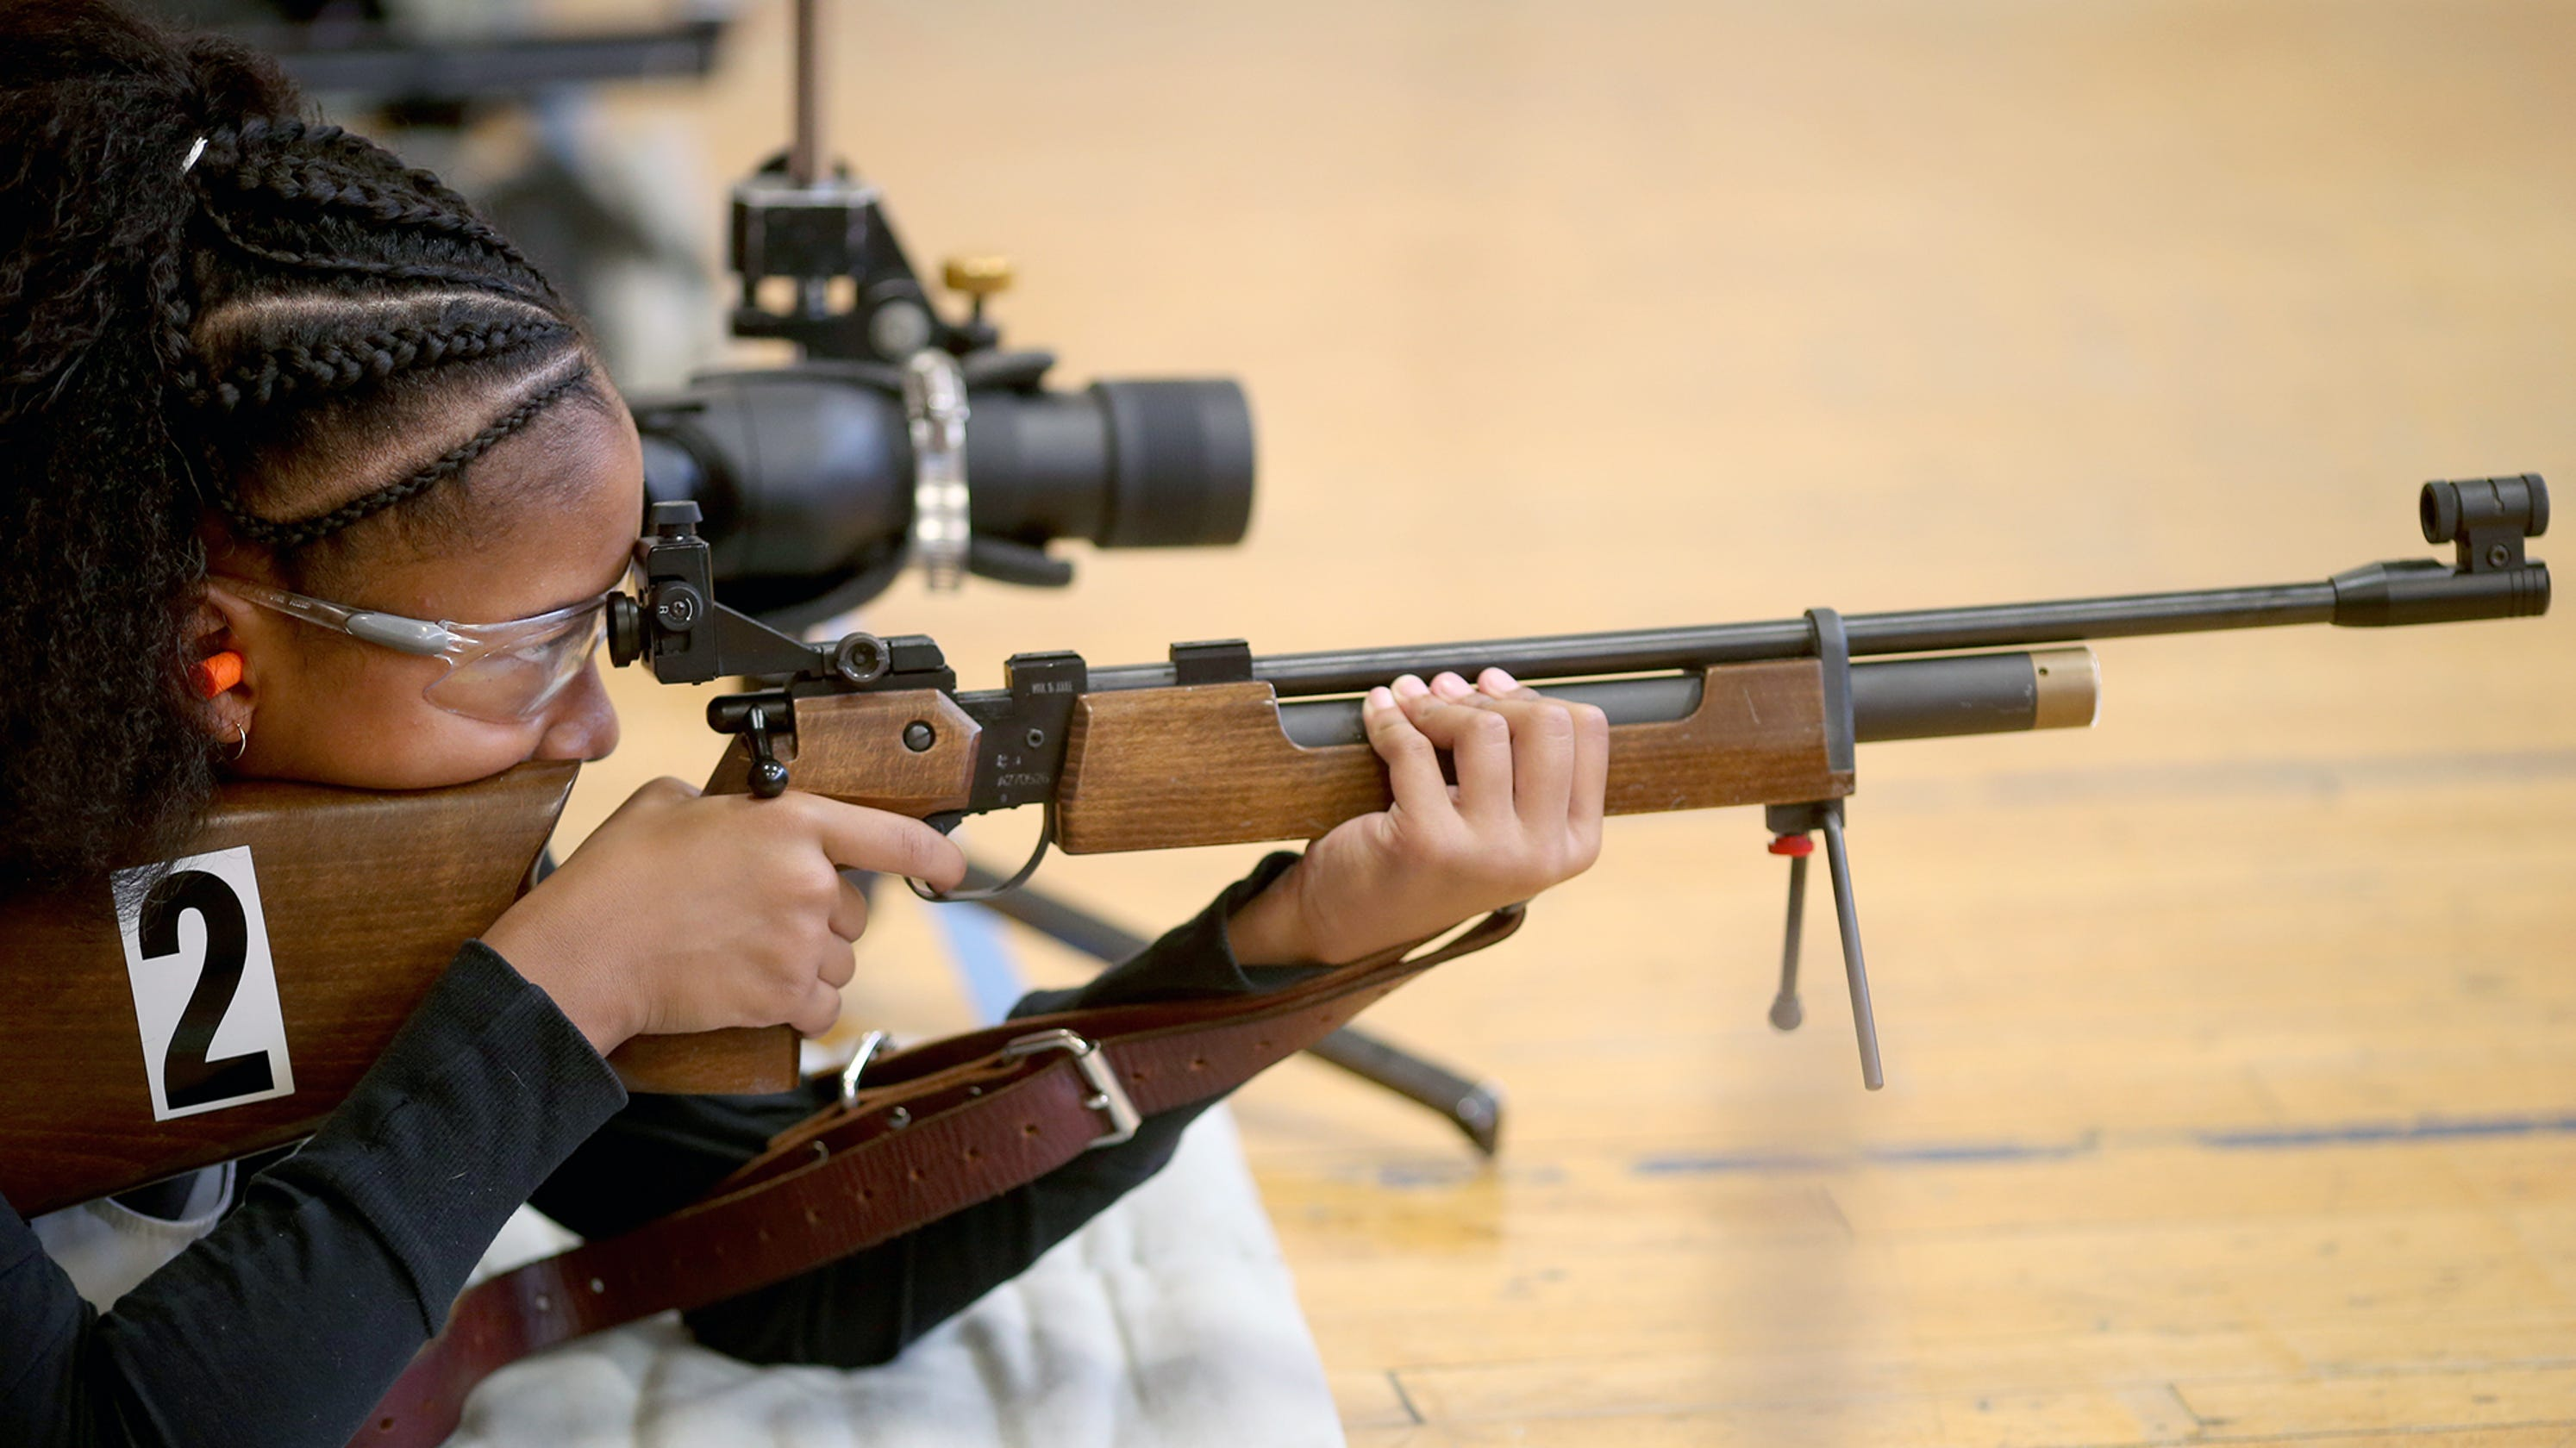 kitsap marksmanship camp aims to teach youth gun safety